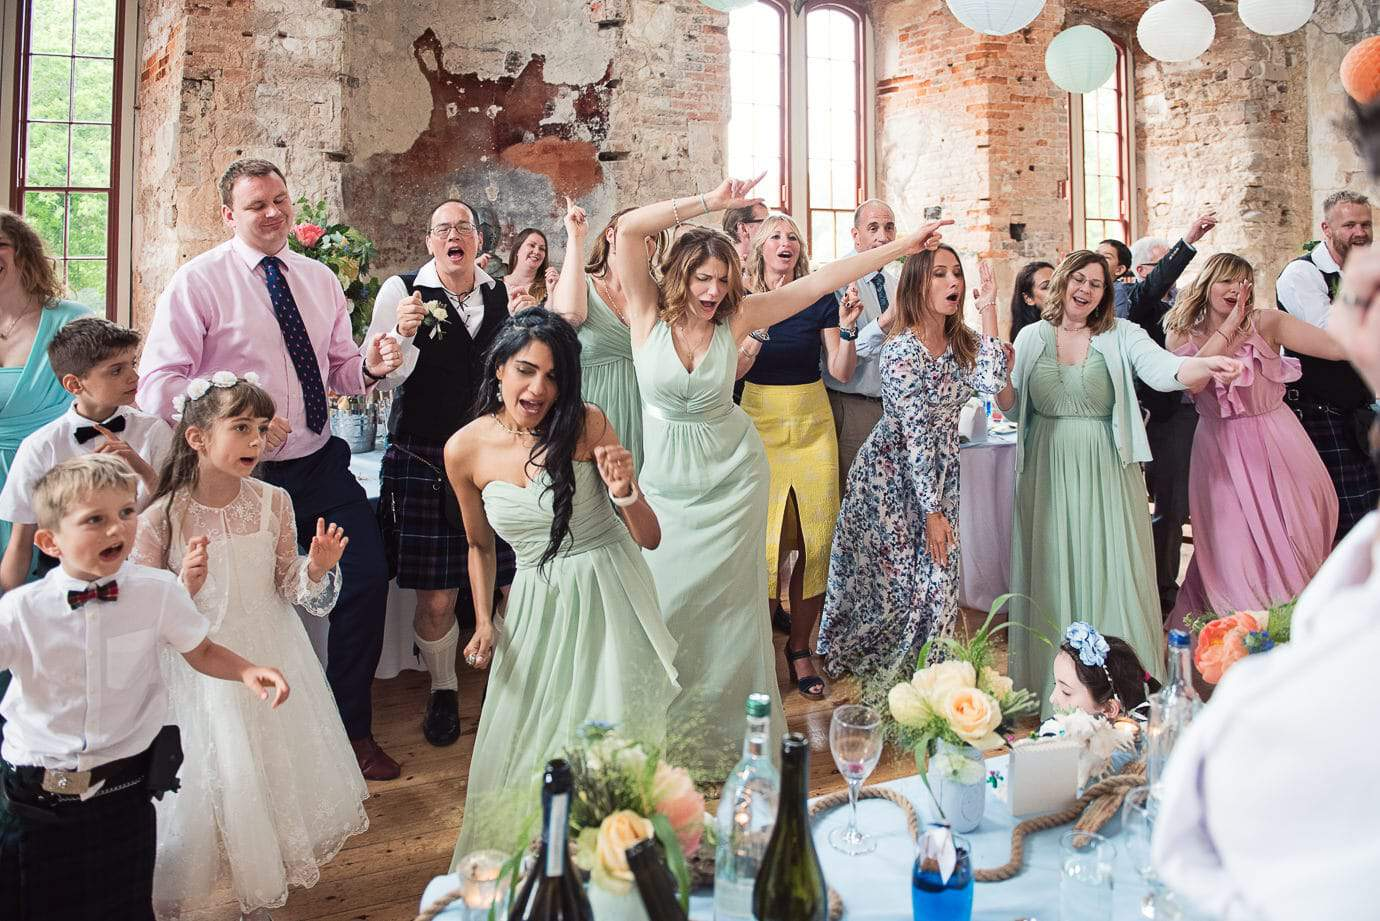 Flash mob dancing at Lulworth Castle wedding photograph one thousand words